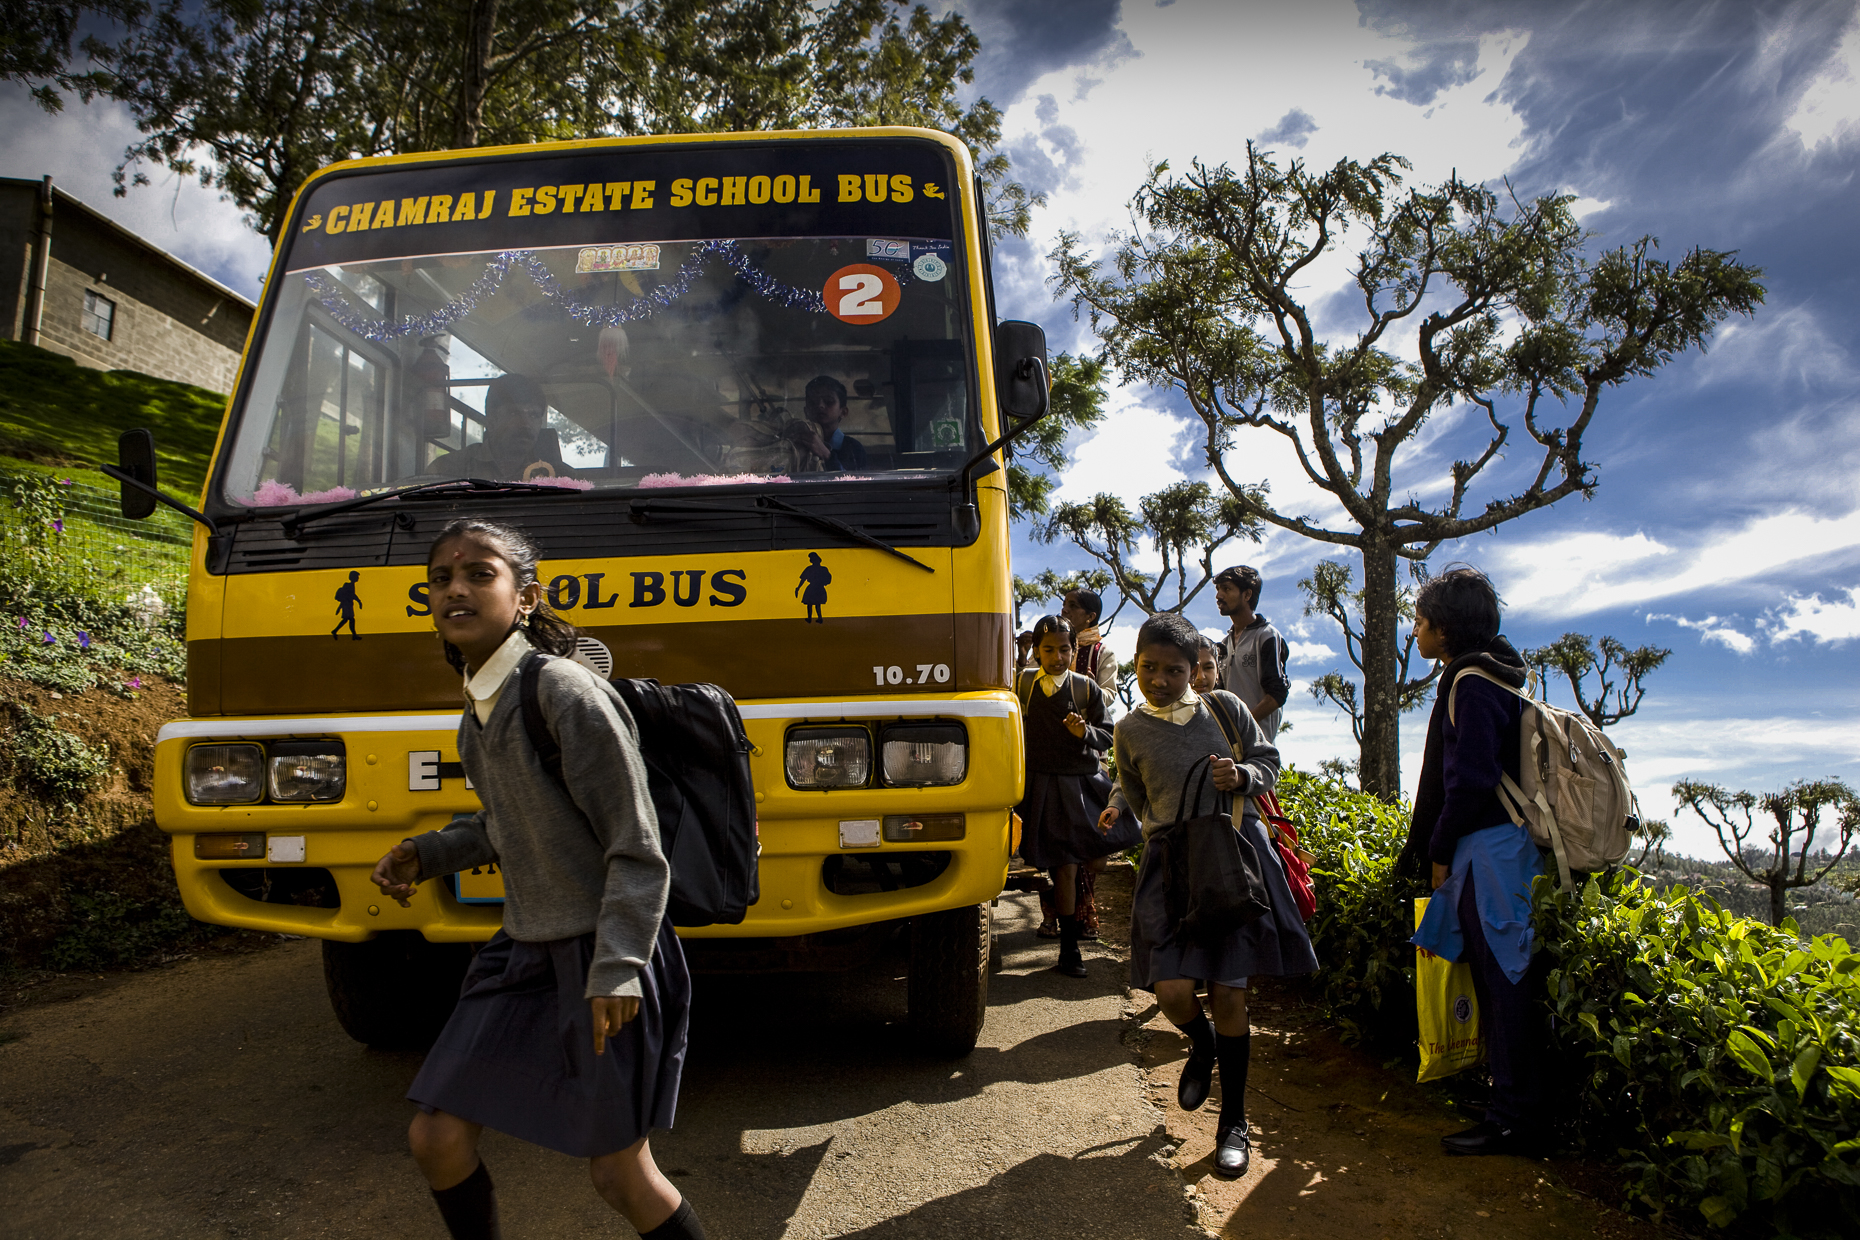 A bus paid for by Fairtrade profits